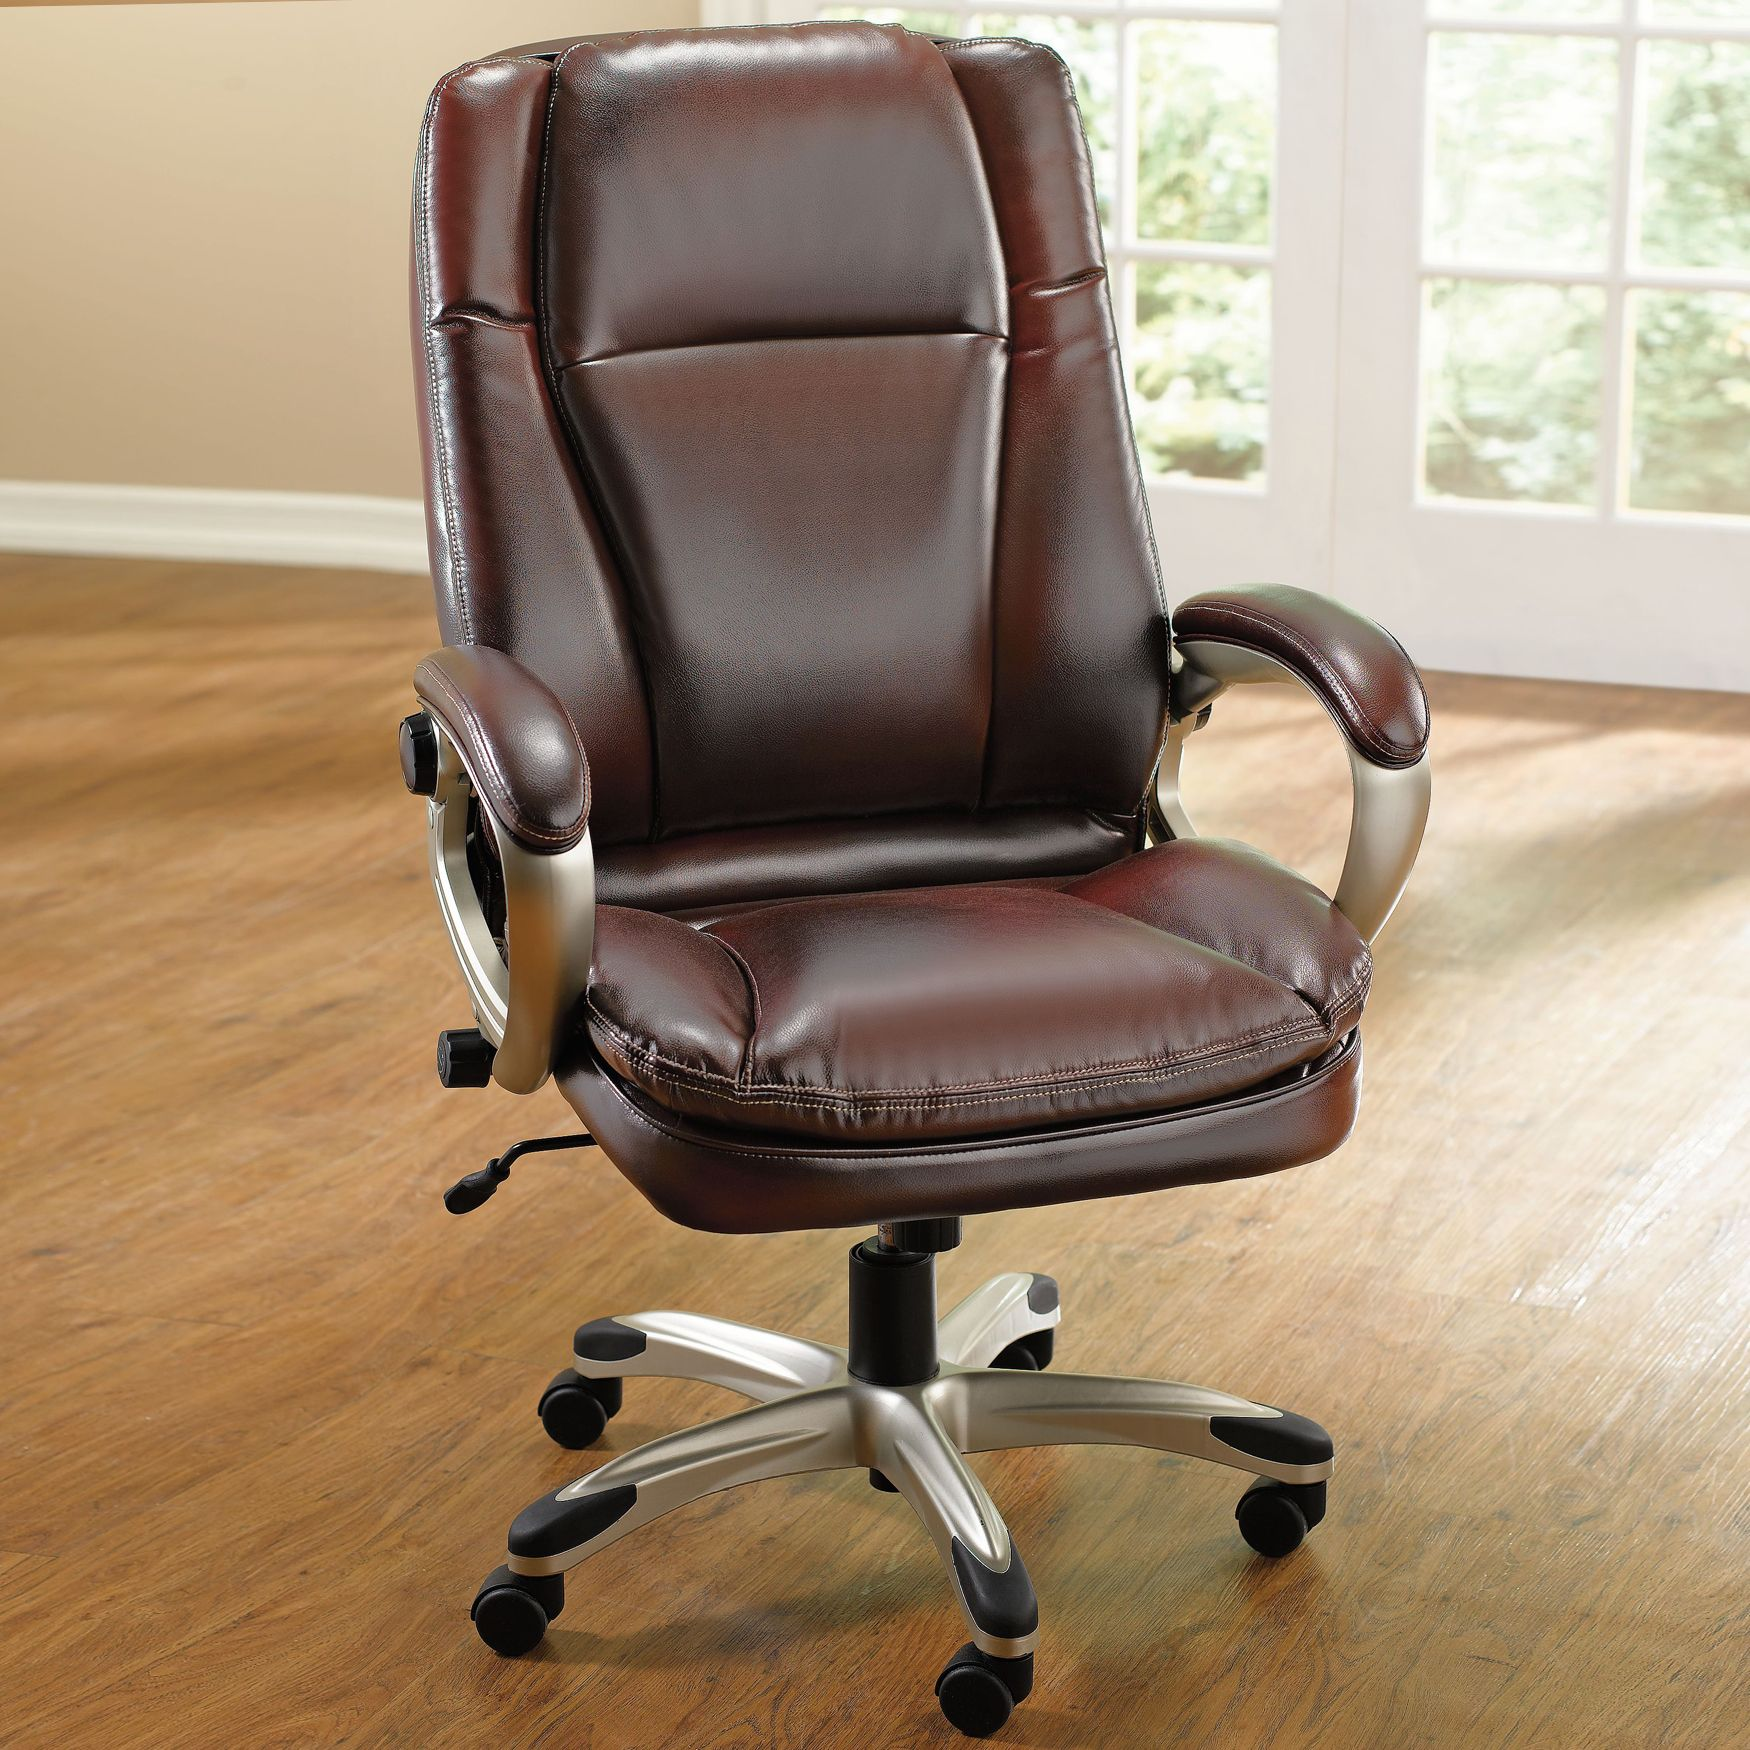 Extra Wide Office Chairs Extra Wide Women 39s Office Chair Extra Large Office